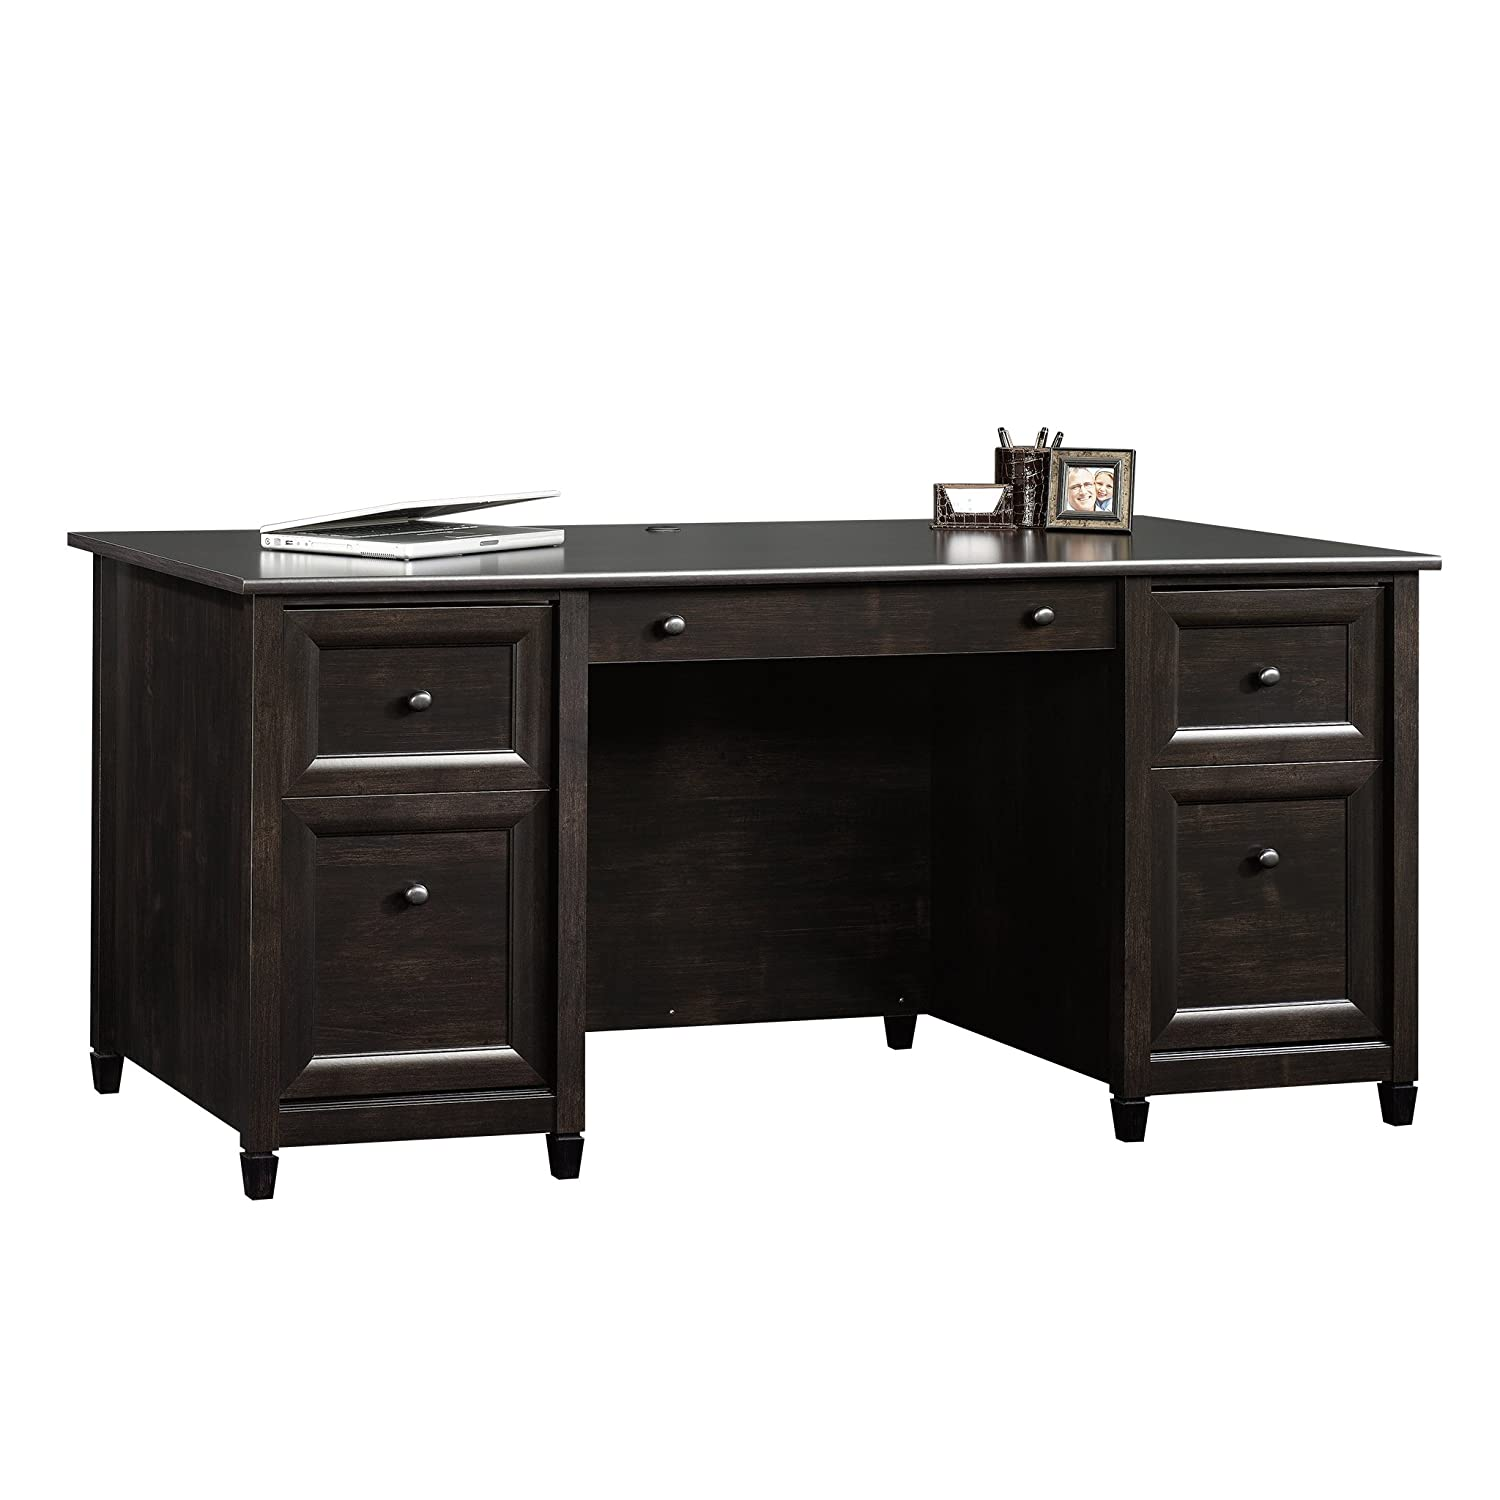 Sauder Palladia L Shaped Computer Desk In Select Cherry